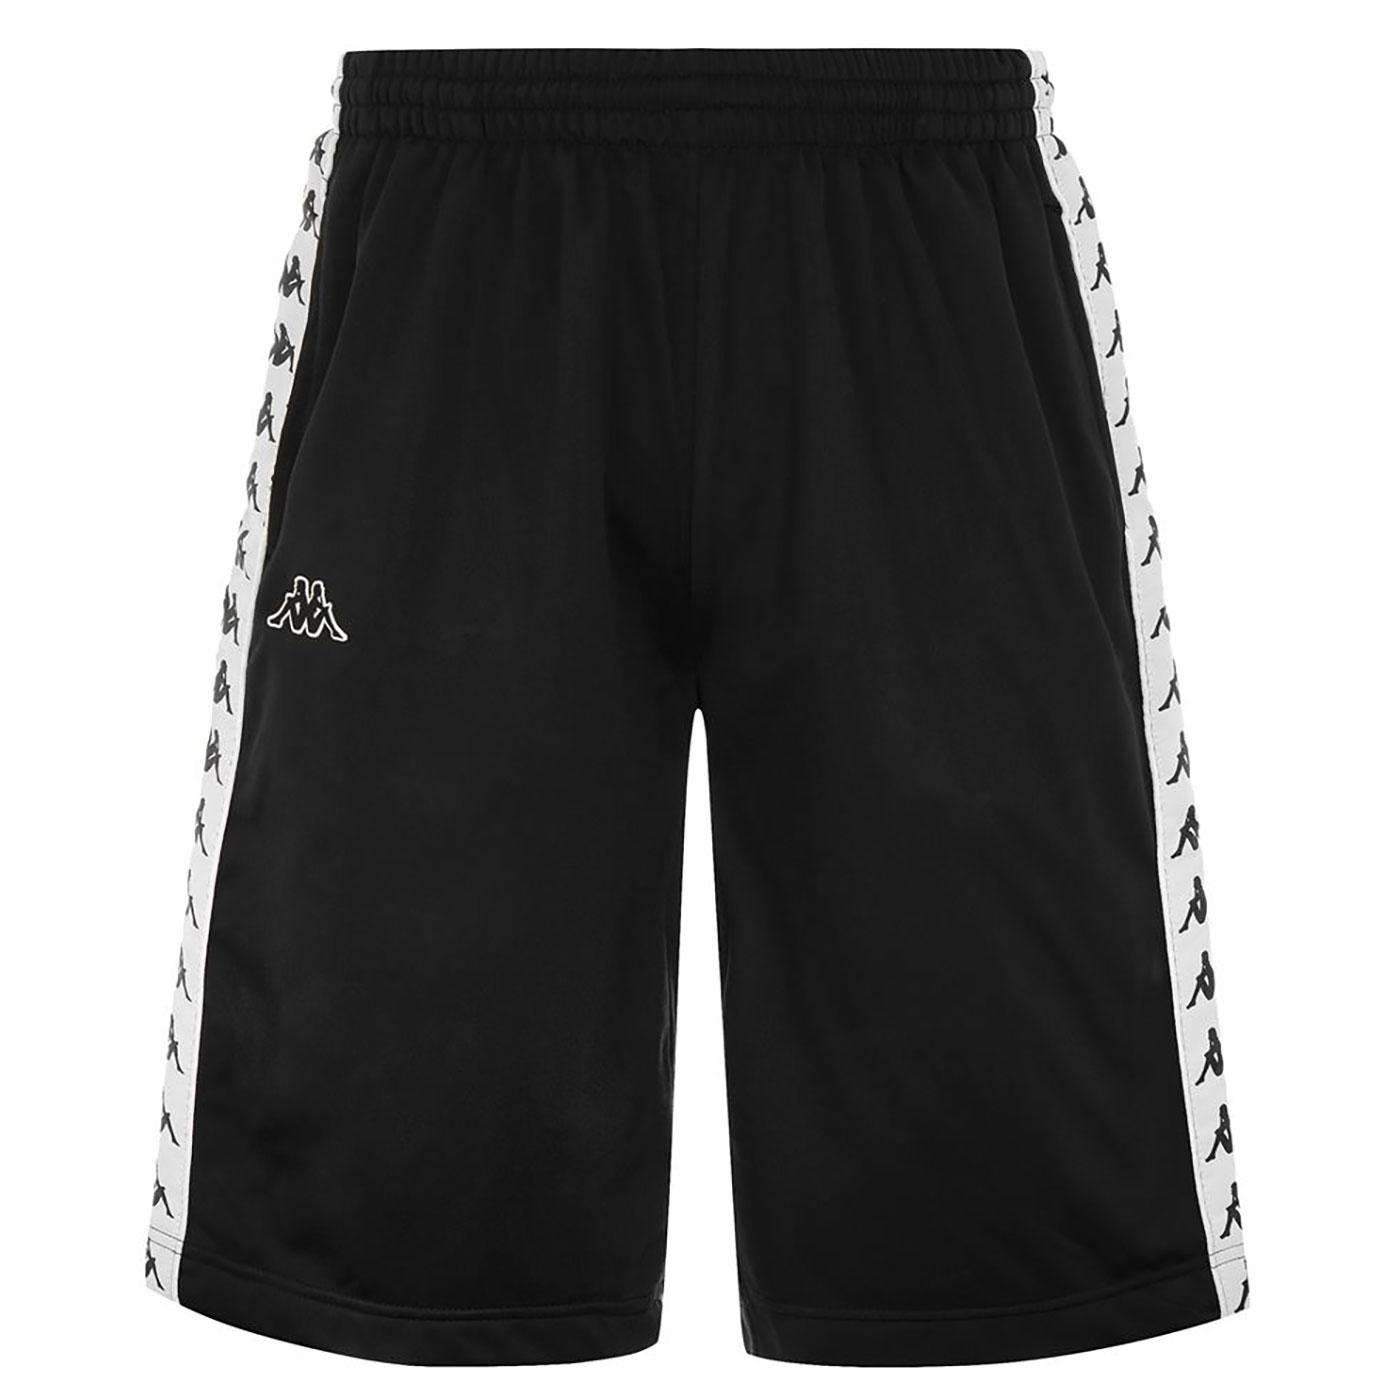 Snapswell 222 Banda KAPPA Retro Football Shorts B